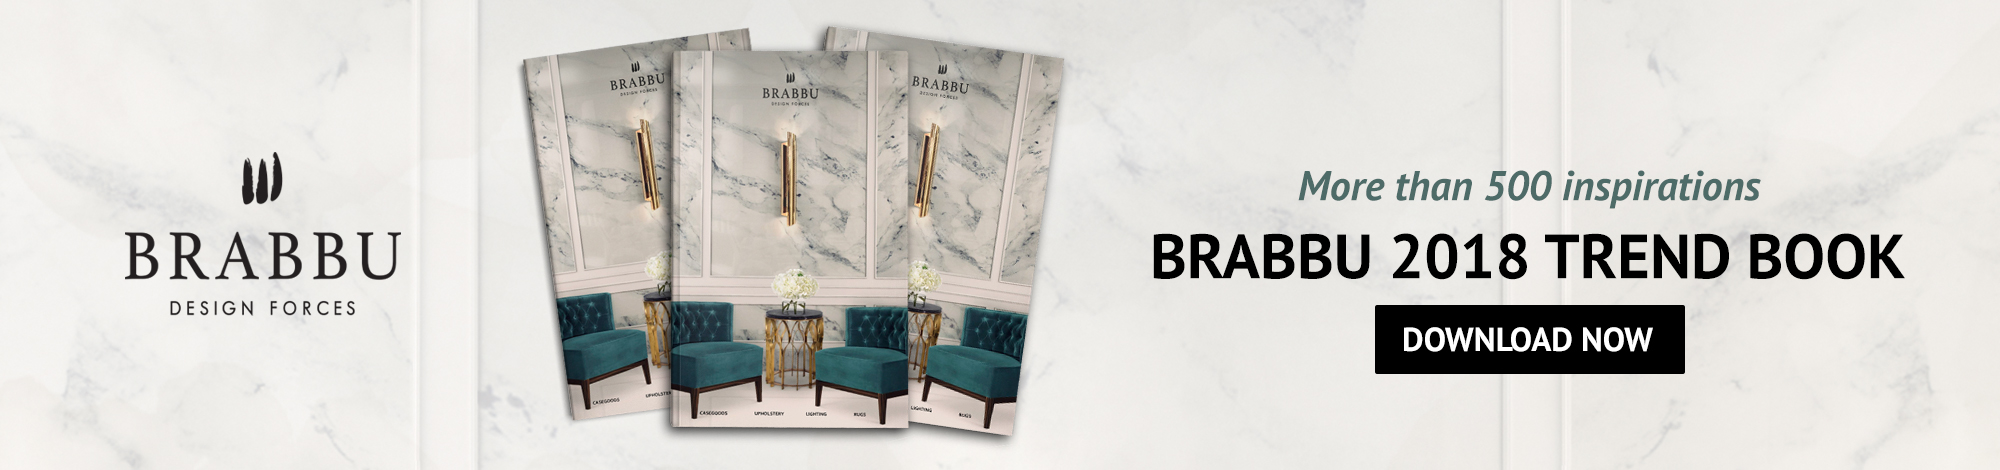 BRABBU Catalogue 2019 color trends The Ultimate 2019 Color Trends For Your Next Interior Design Project!  1C5EB82328DCFD5BD10428DB124BD945082C079483CACCDD2D pimgpsh fullsize distr